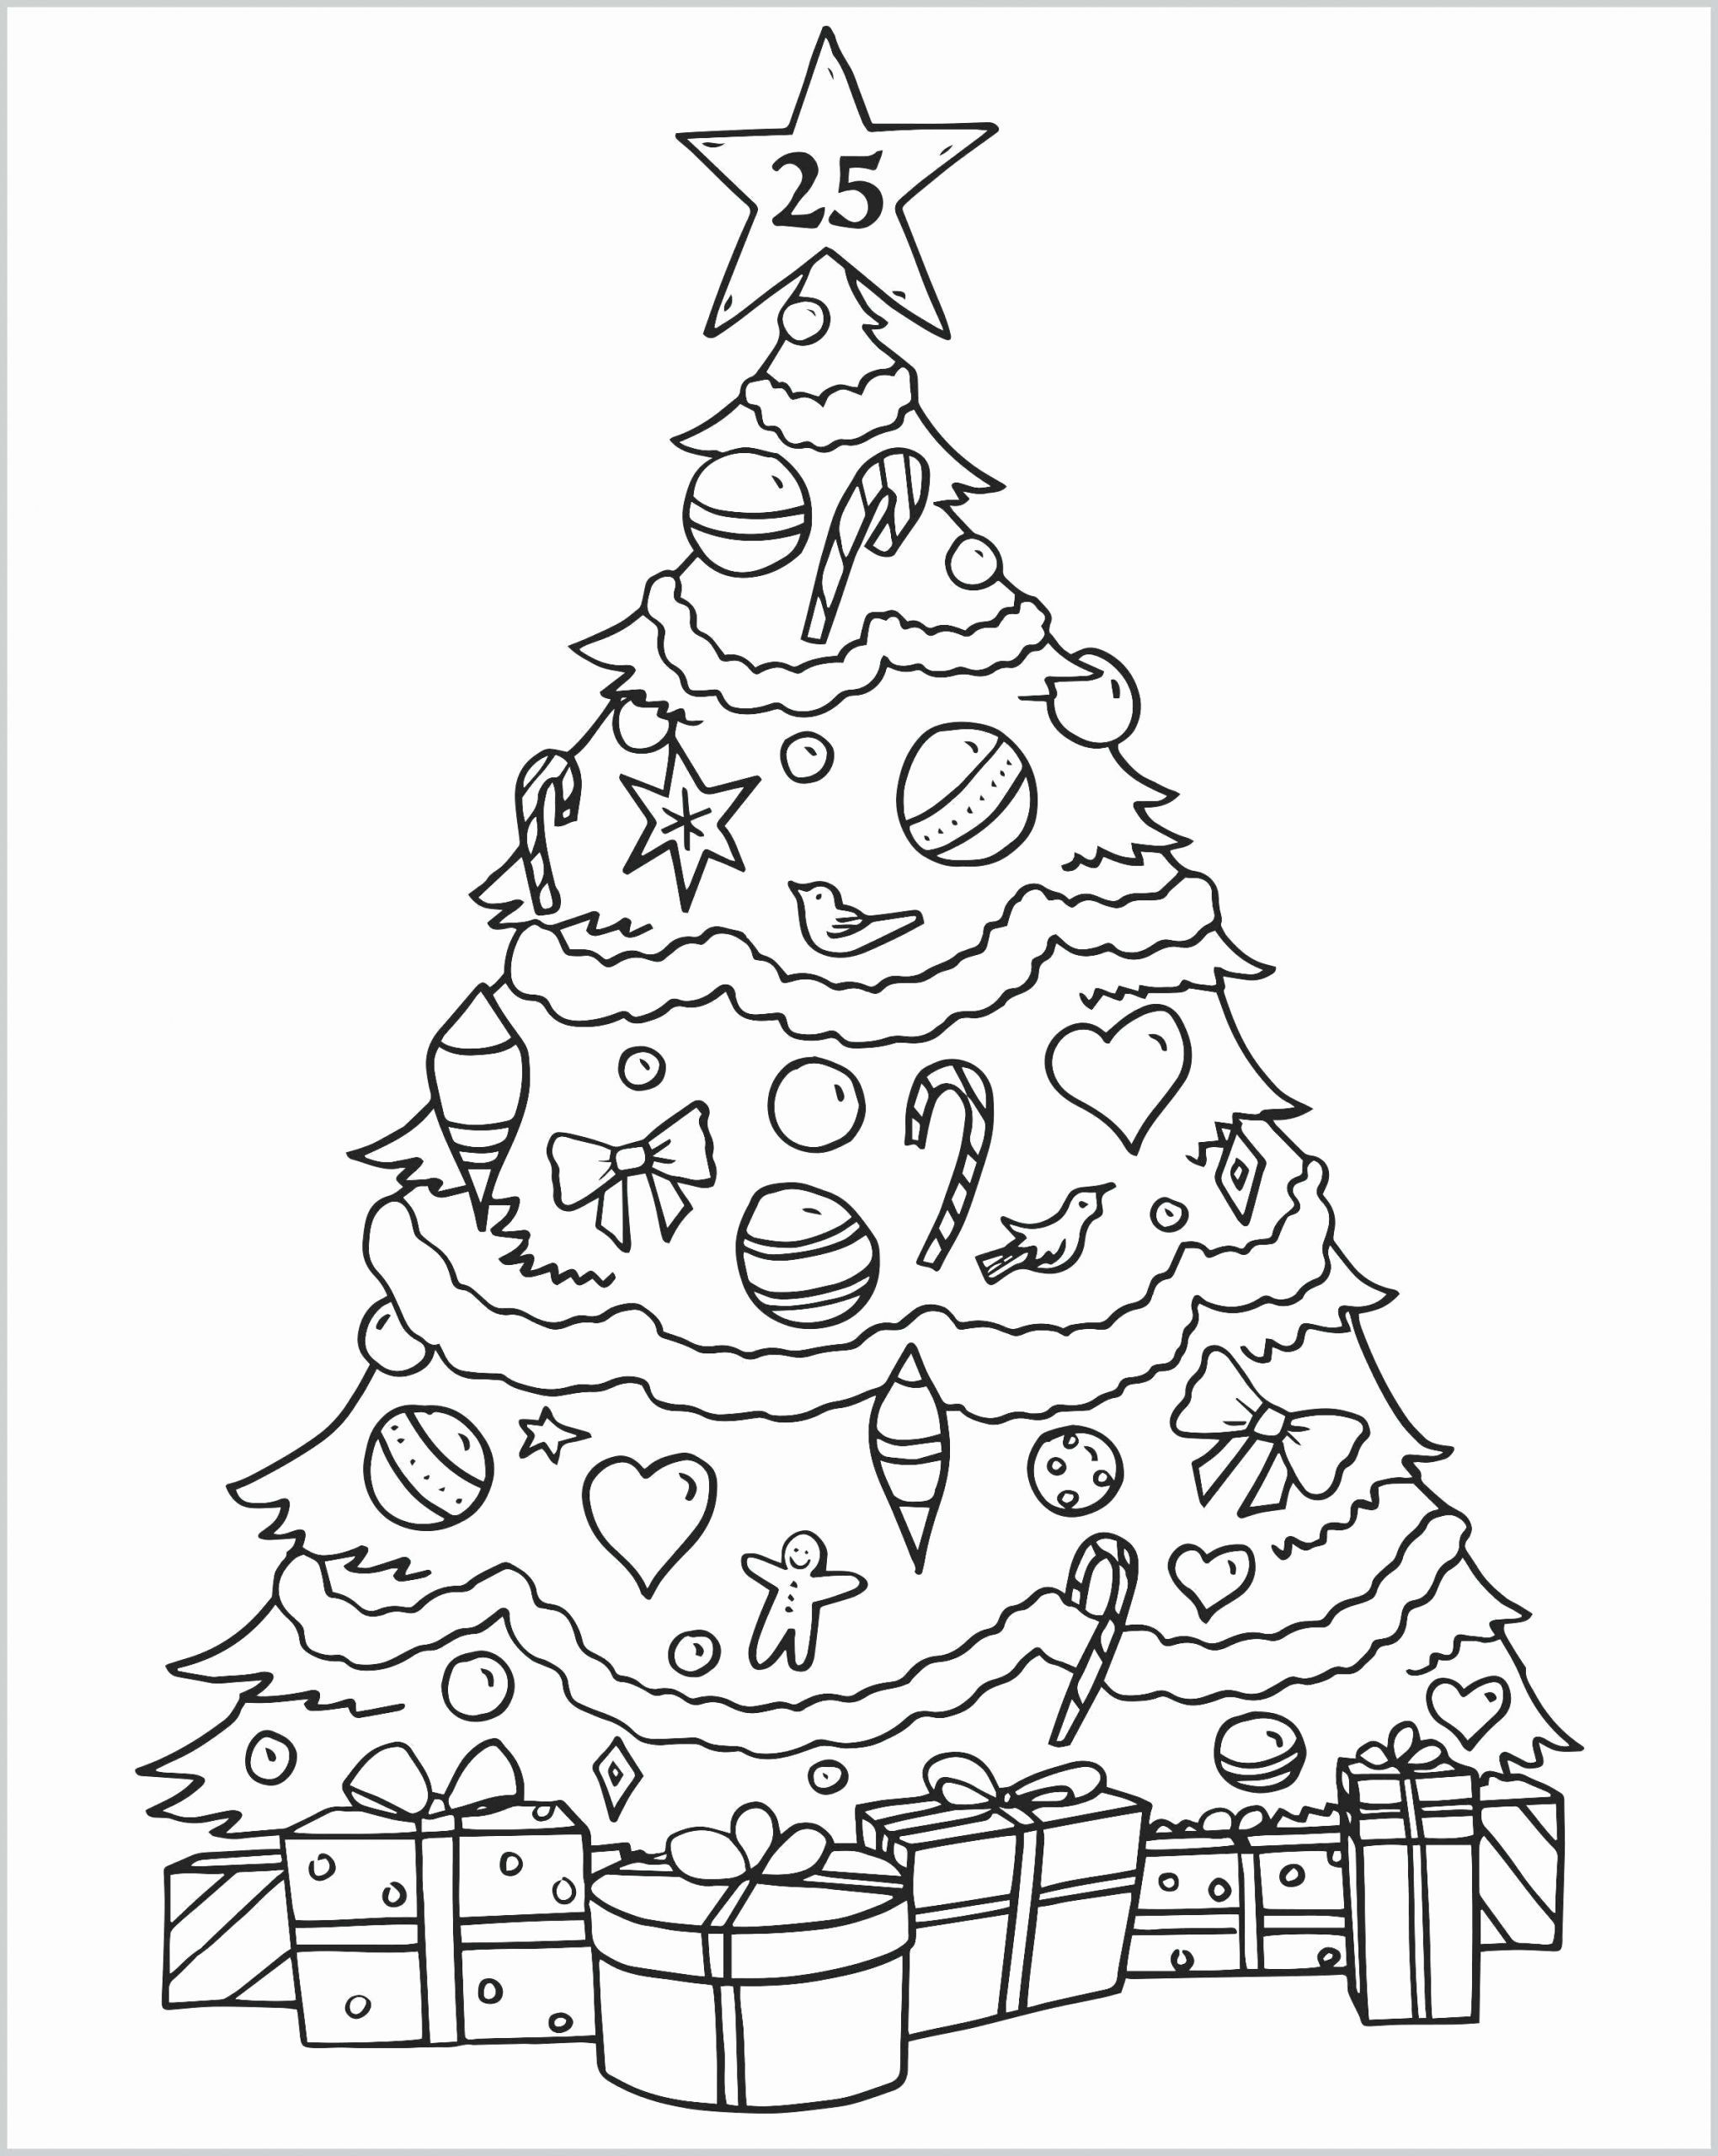 T For Tree Coloring Page Best Of Palm Tree Coloring Pages